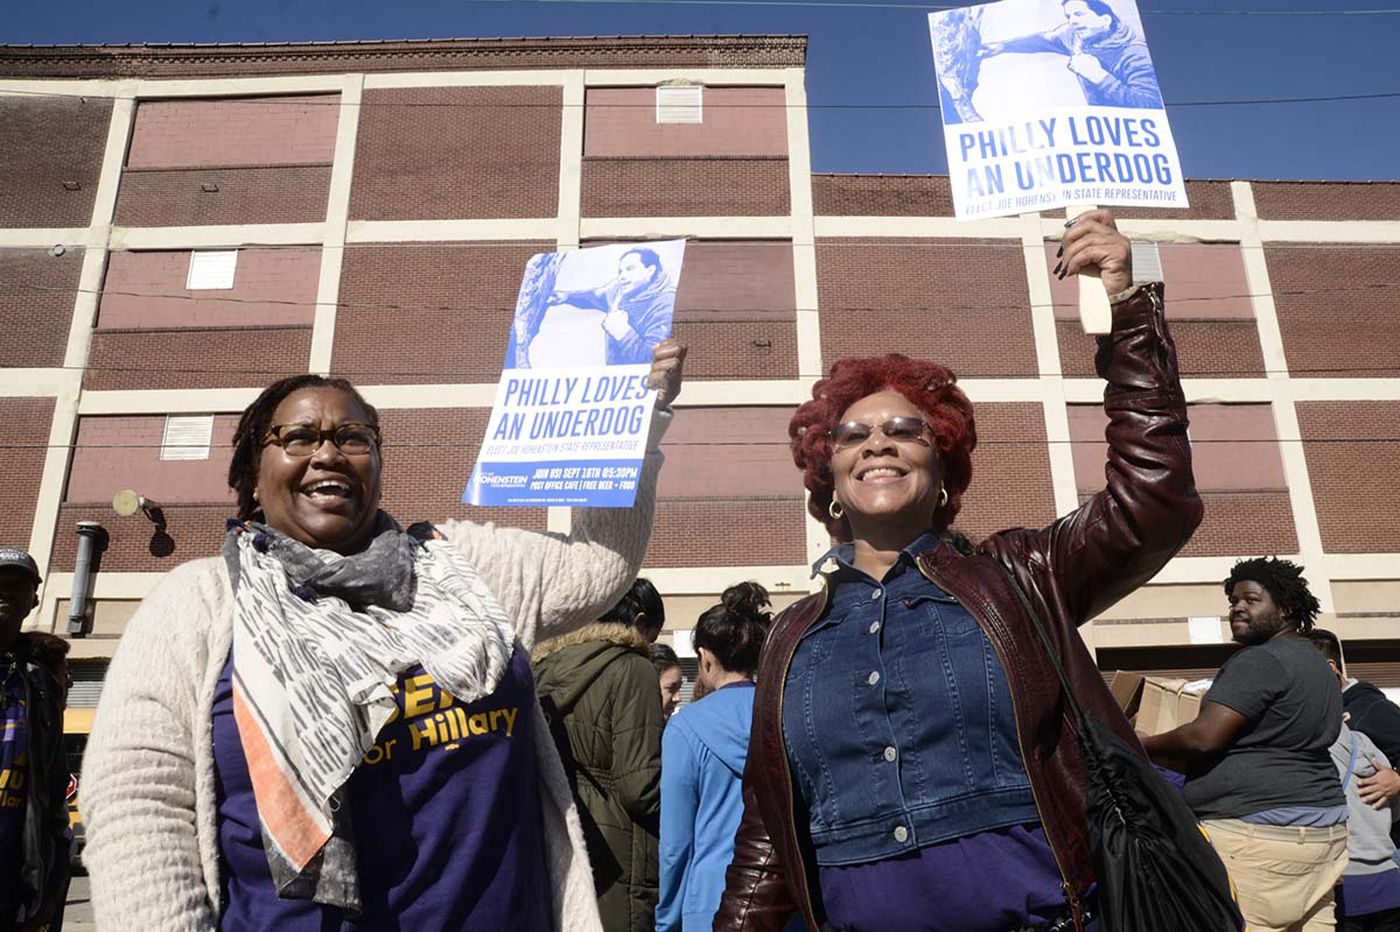 Union workers rally, urge votes for Clinton and McGinty